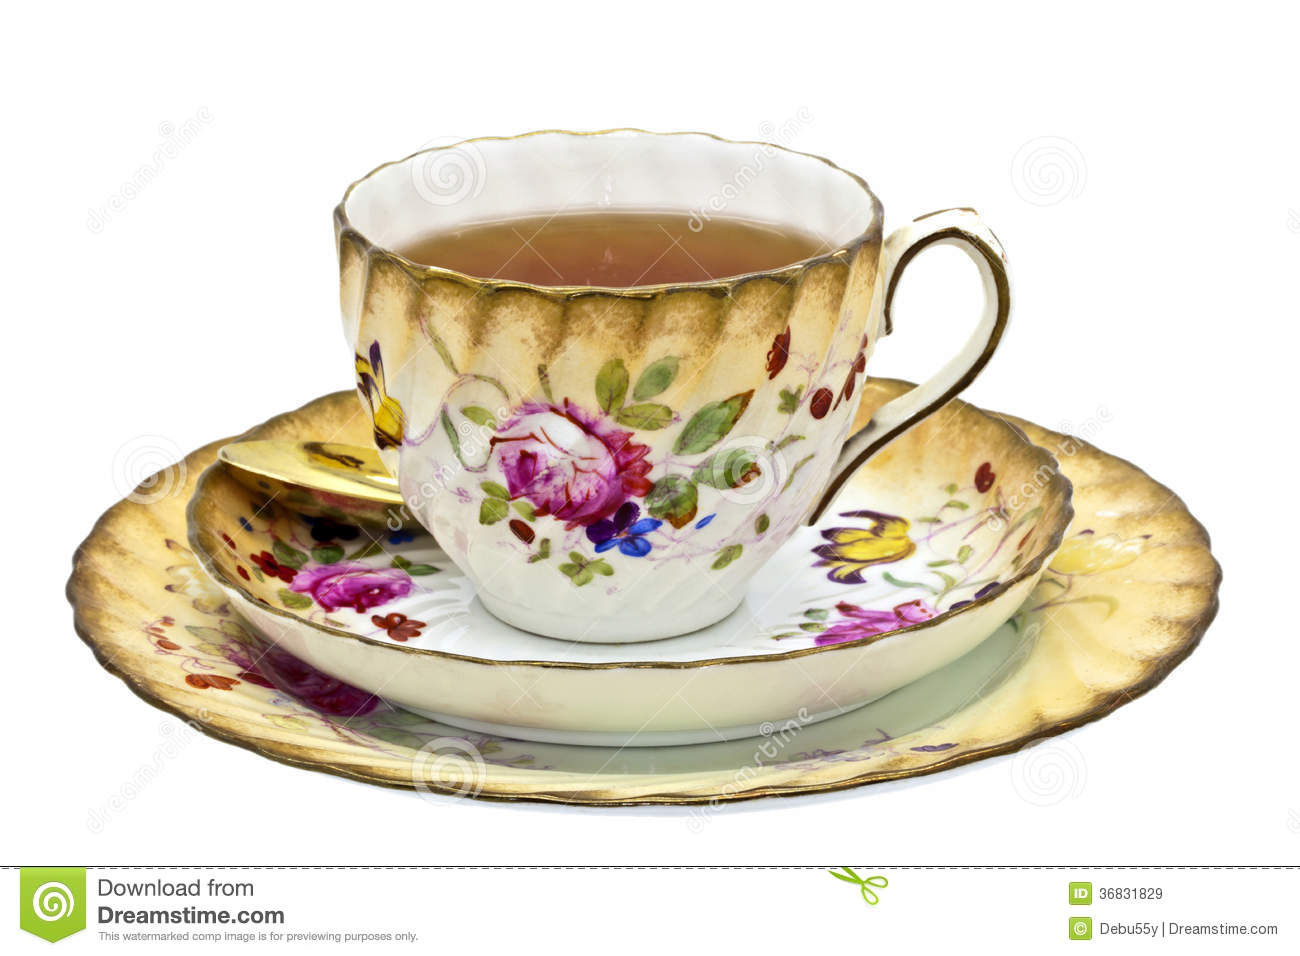 Antique Tea Cup With Tea. Royalty Free Stock Images - Image: 36831829